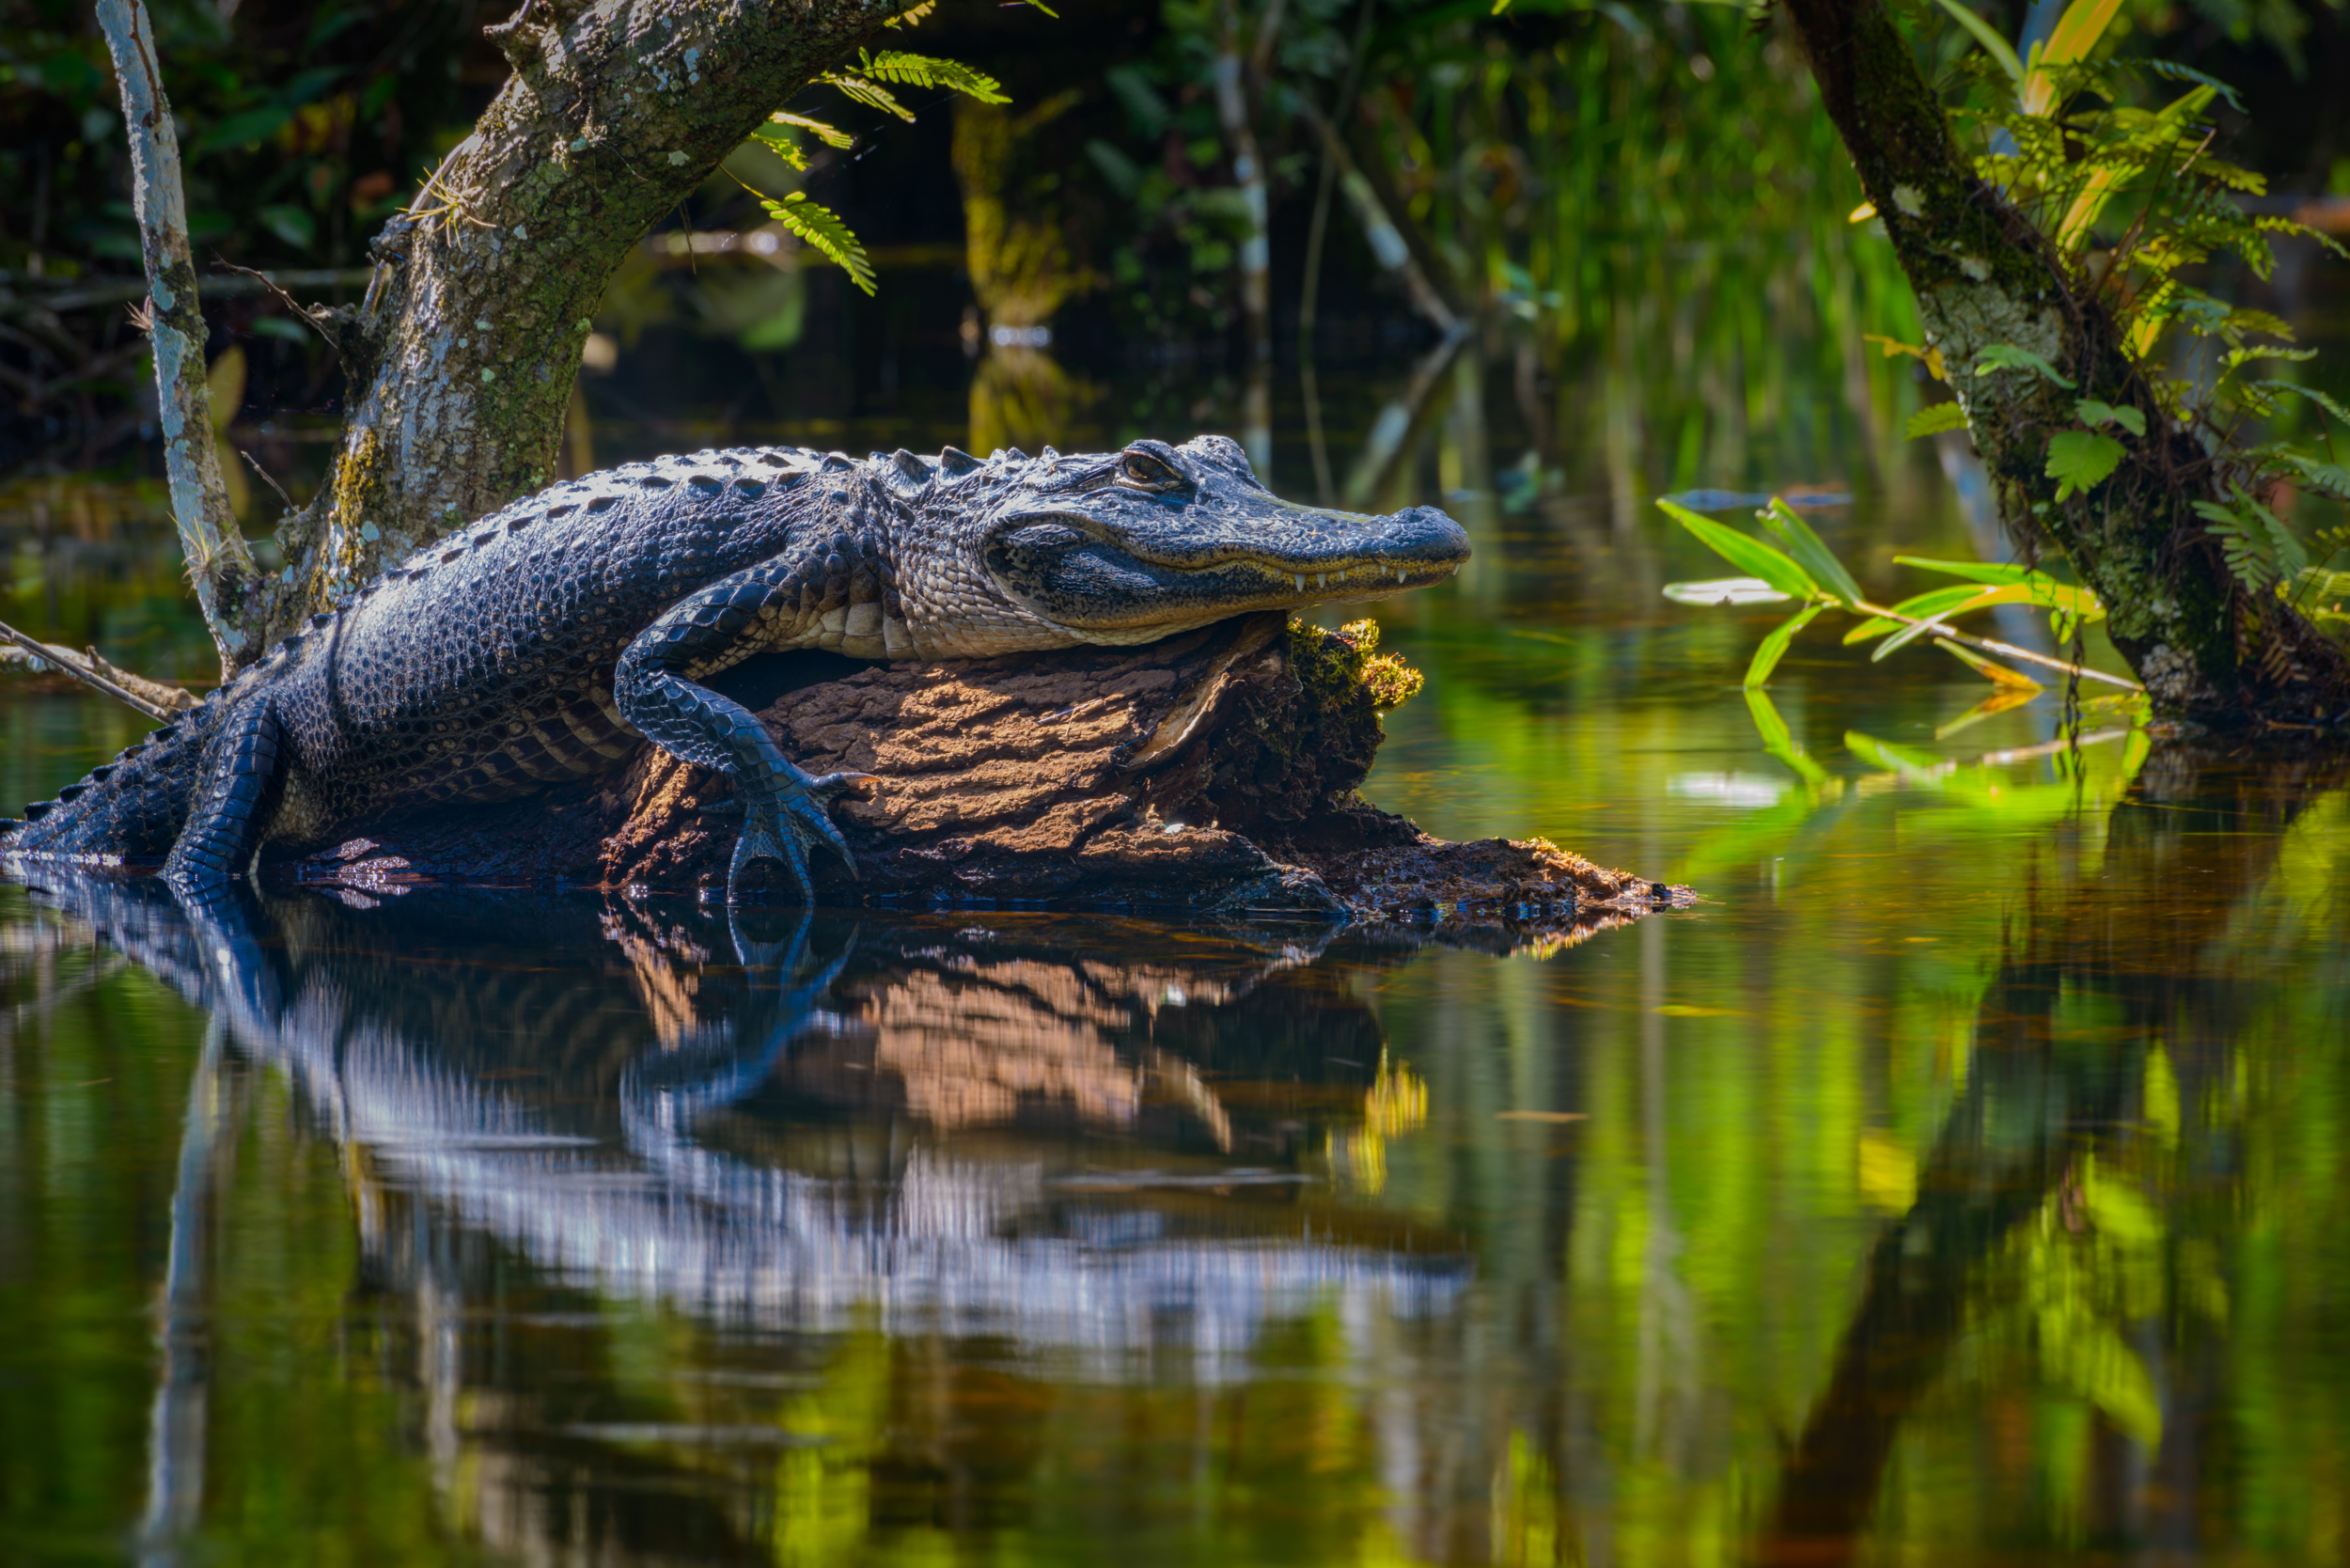 A small alligator catches some sun on a log in the swamp of Big Cypress National Preserve in Florida